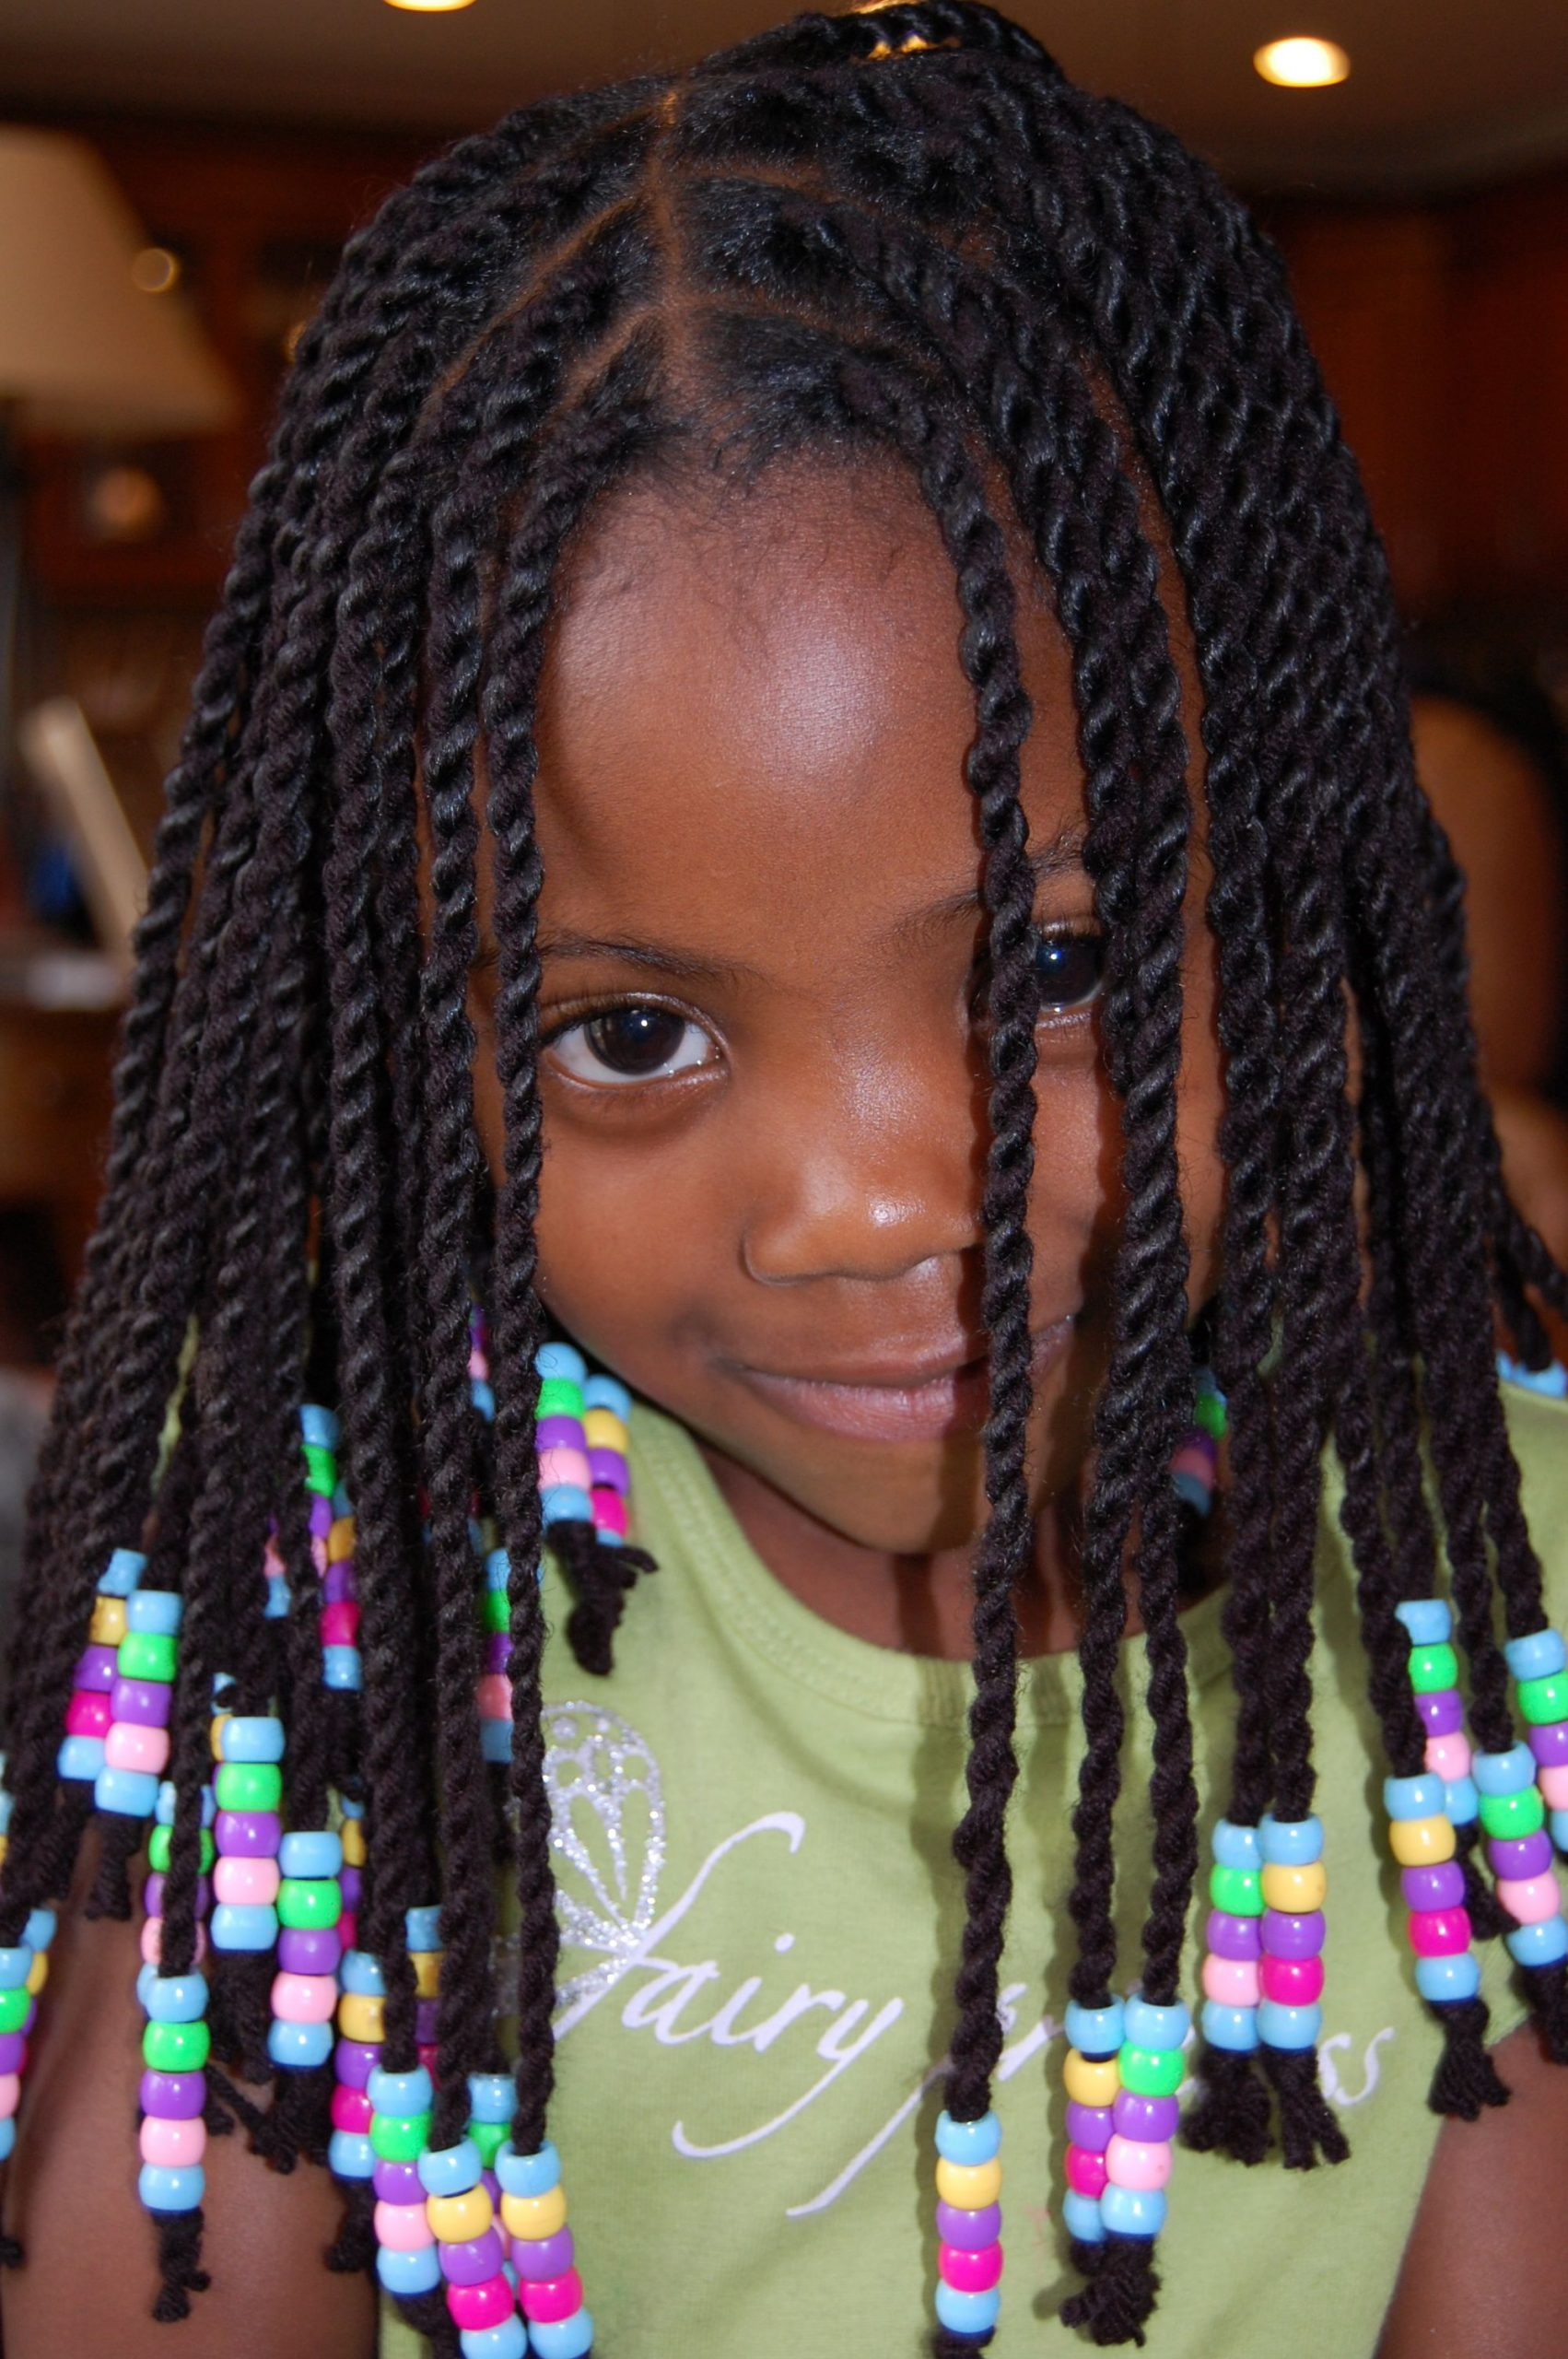 Cute hairstyles for kids hairstyleforblackwomen.net 95 scaled